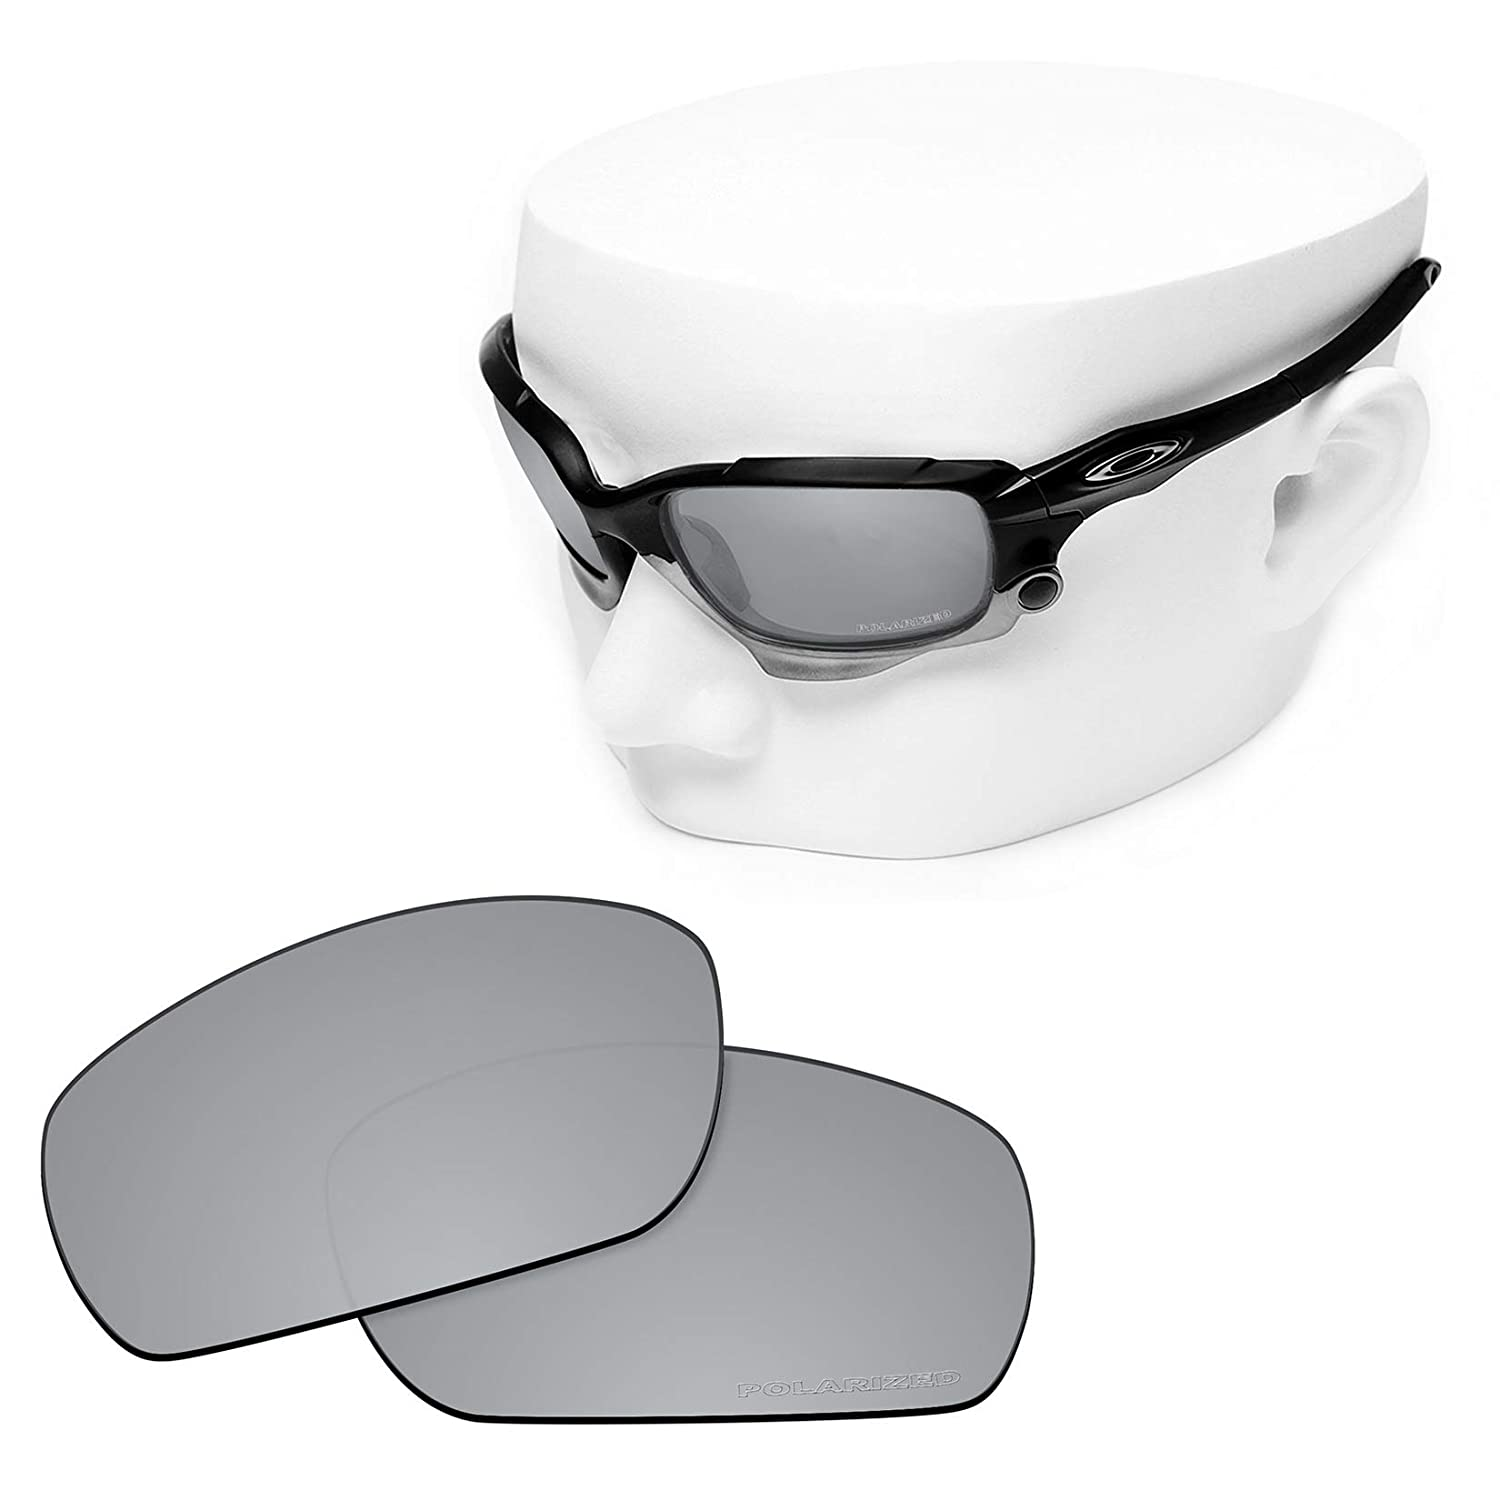 4756c3817cb Amazon.com  OOWLIT 2 Pair Replacement Sunglass Lenses compatible with Oakley  Jawbone POLARIZED  Clothing